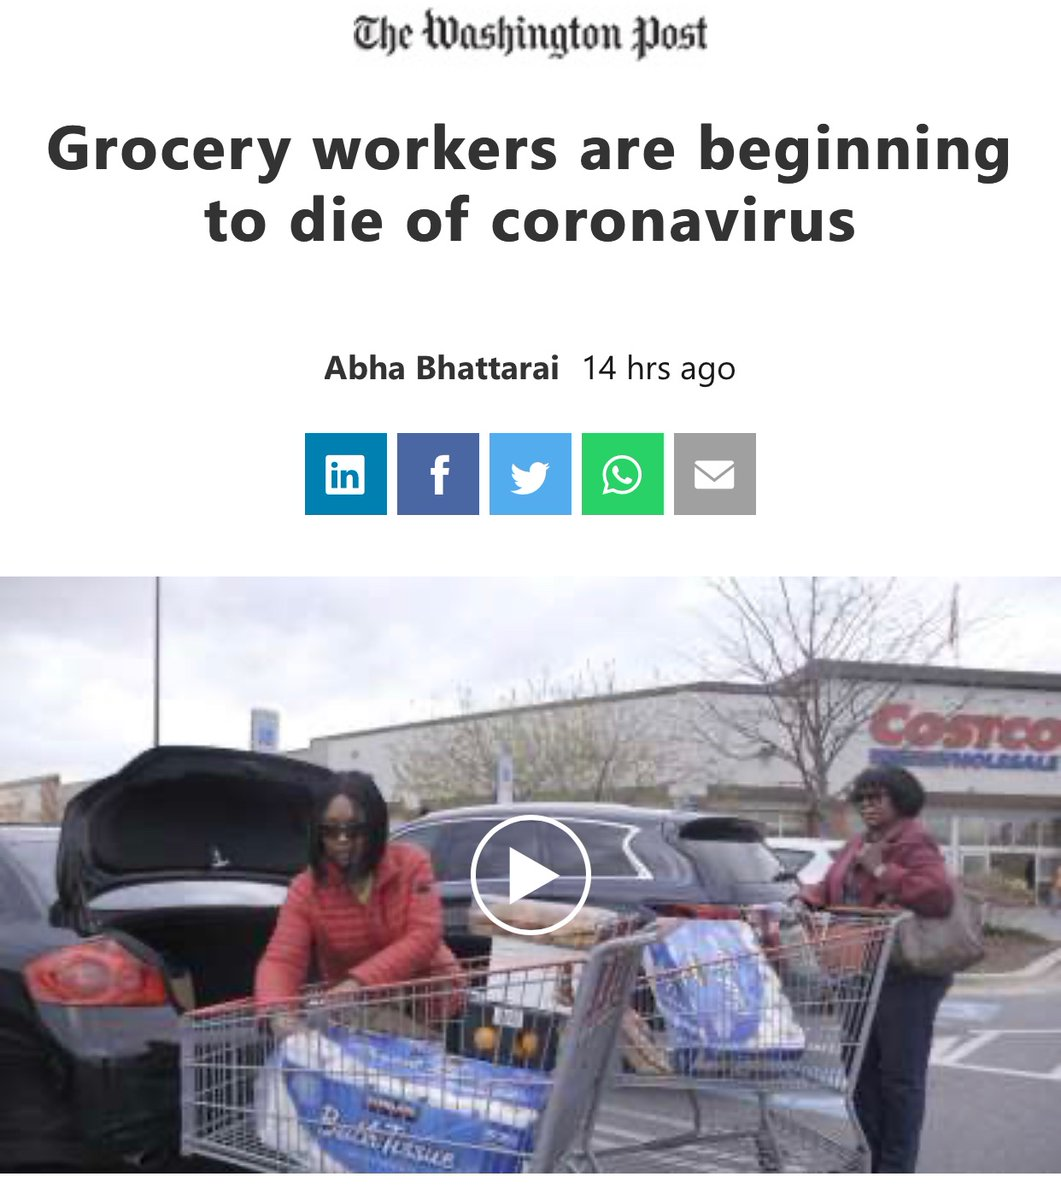 And here....we... go #TheStormIsUponUs   https://www.msn.com/en-us/news/us/grocery-workers-are-beginning-to-die-of-coronavirus/ar-BB12eFSF…pic.twitter.com/W1V3E6S1a2